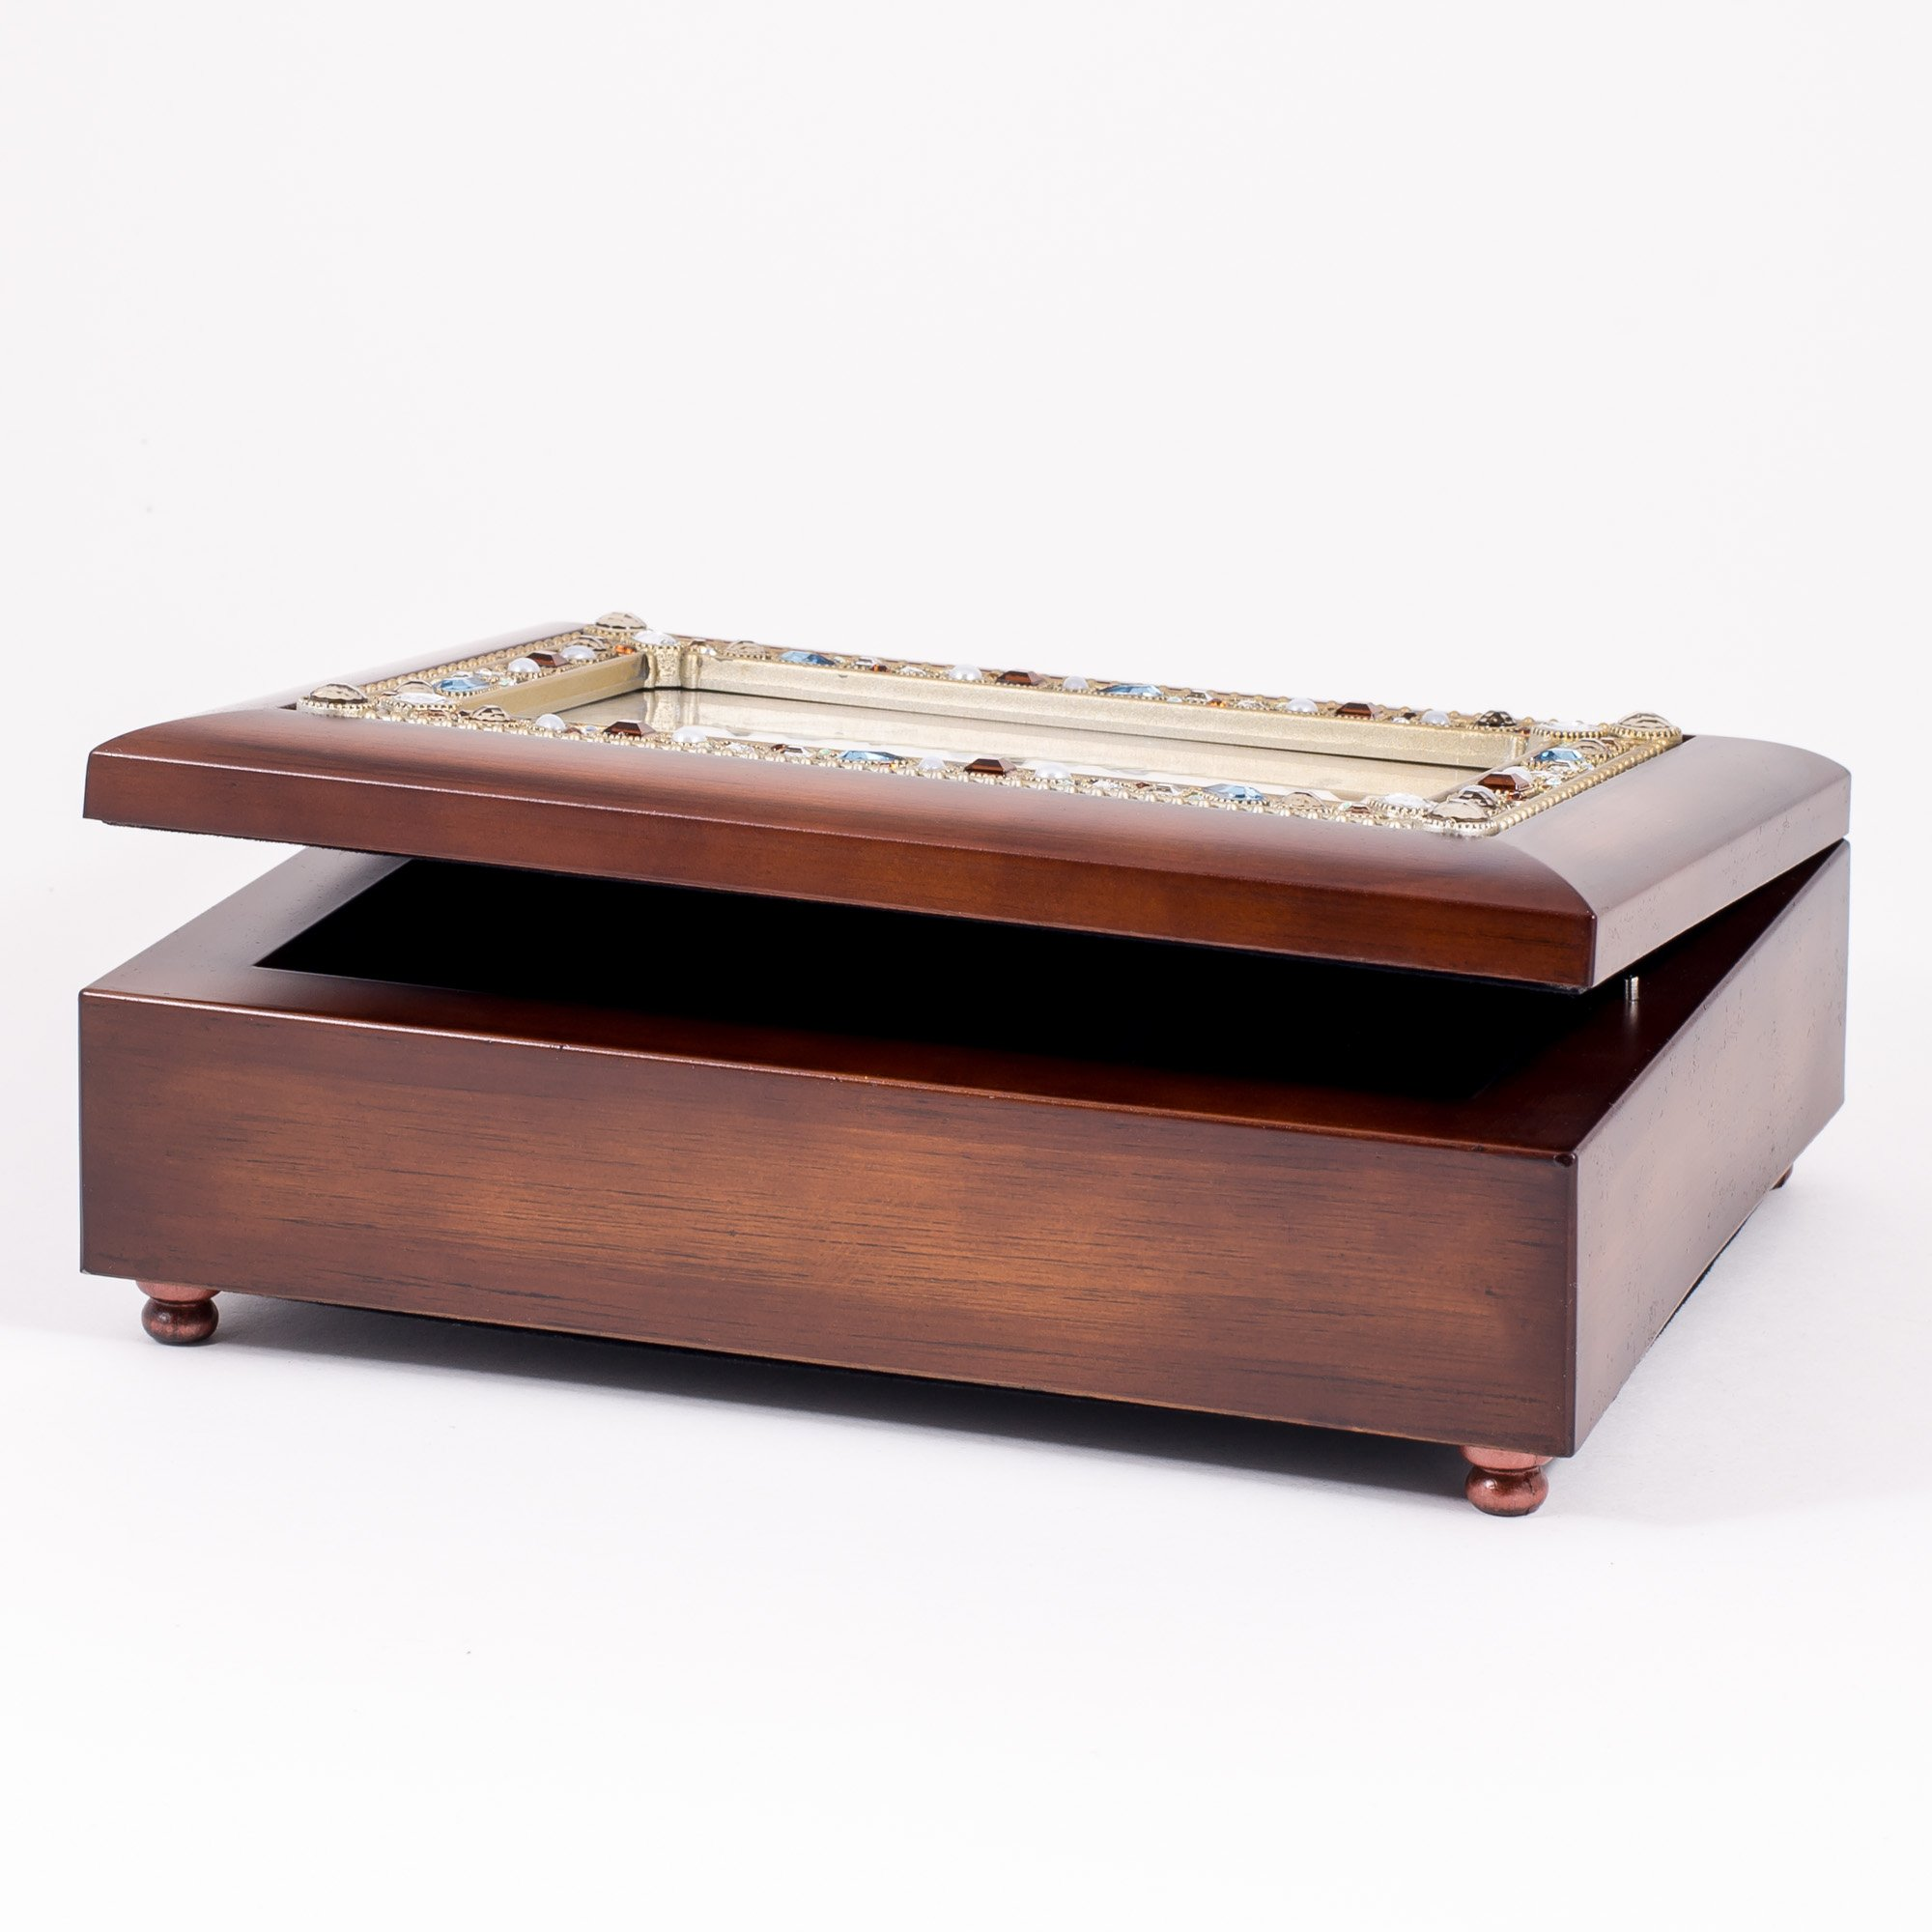 Friendship Life's Gifts Jewel Musical Music Jewelry Box with Dark Wood Finish Plays That's What Friends Are For by Cottage Garden (Image #4)